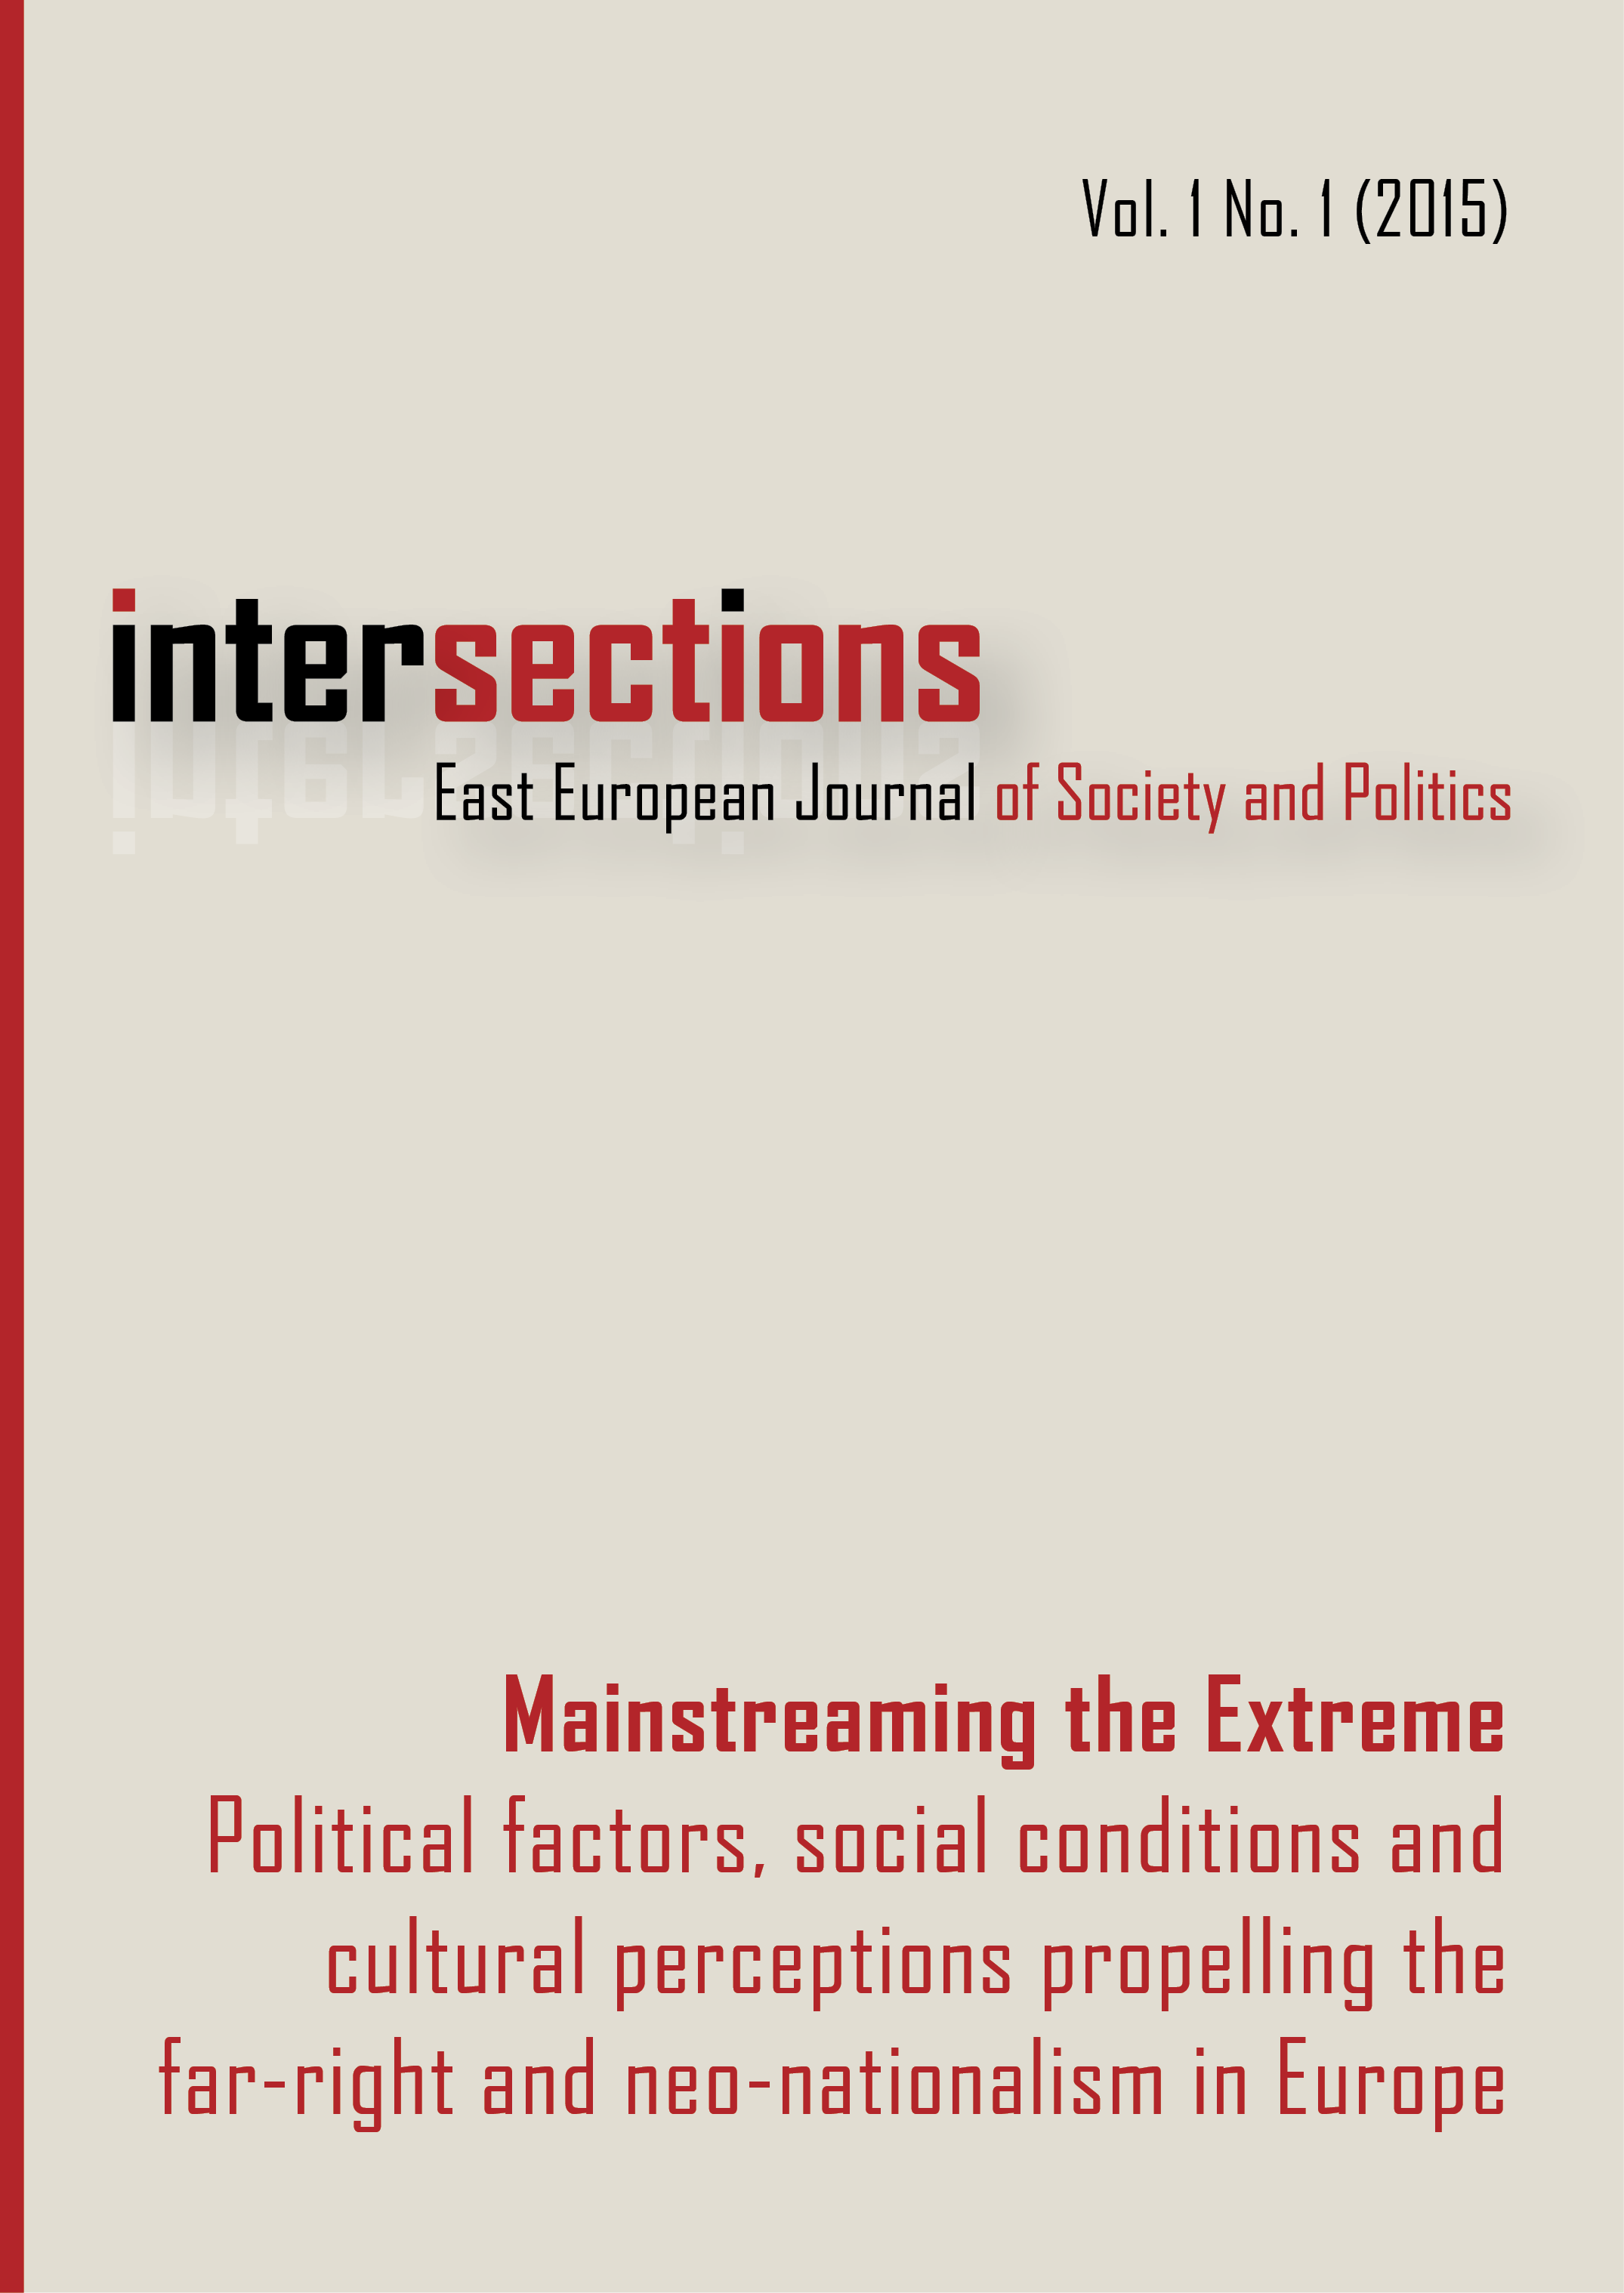 View Vol. 1 No. 1 (2015): Mainstreaming the Extreme